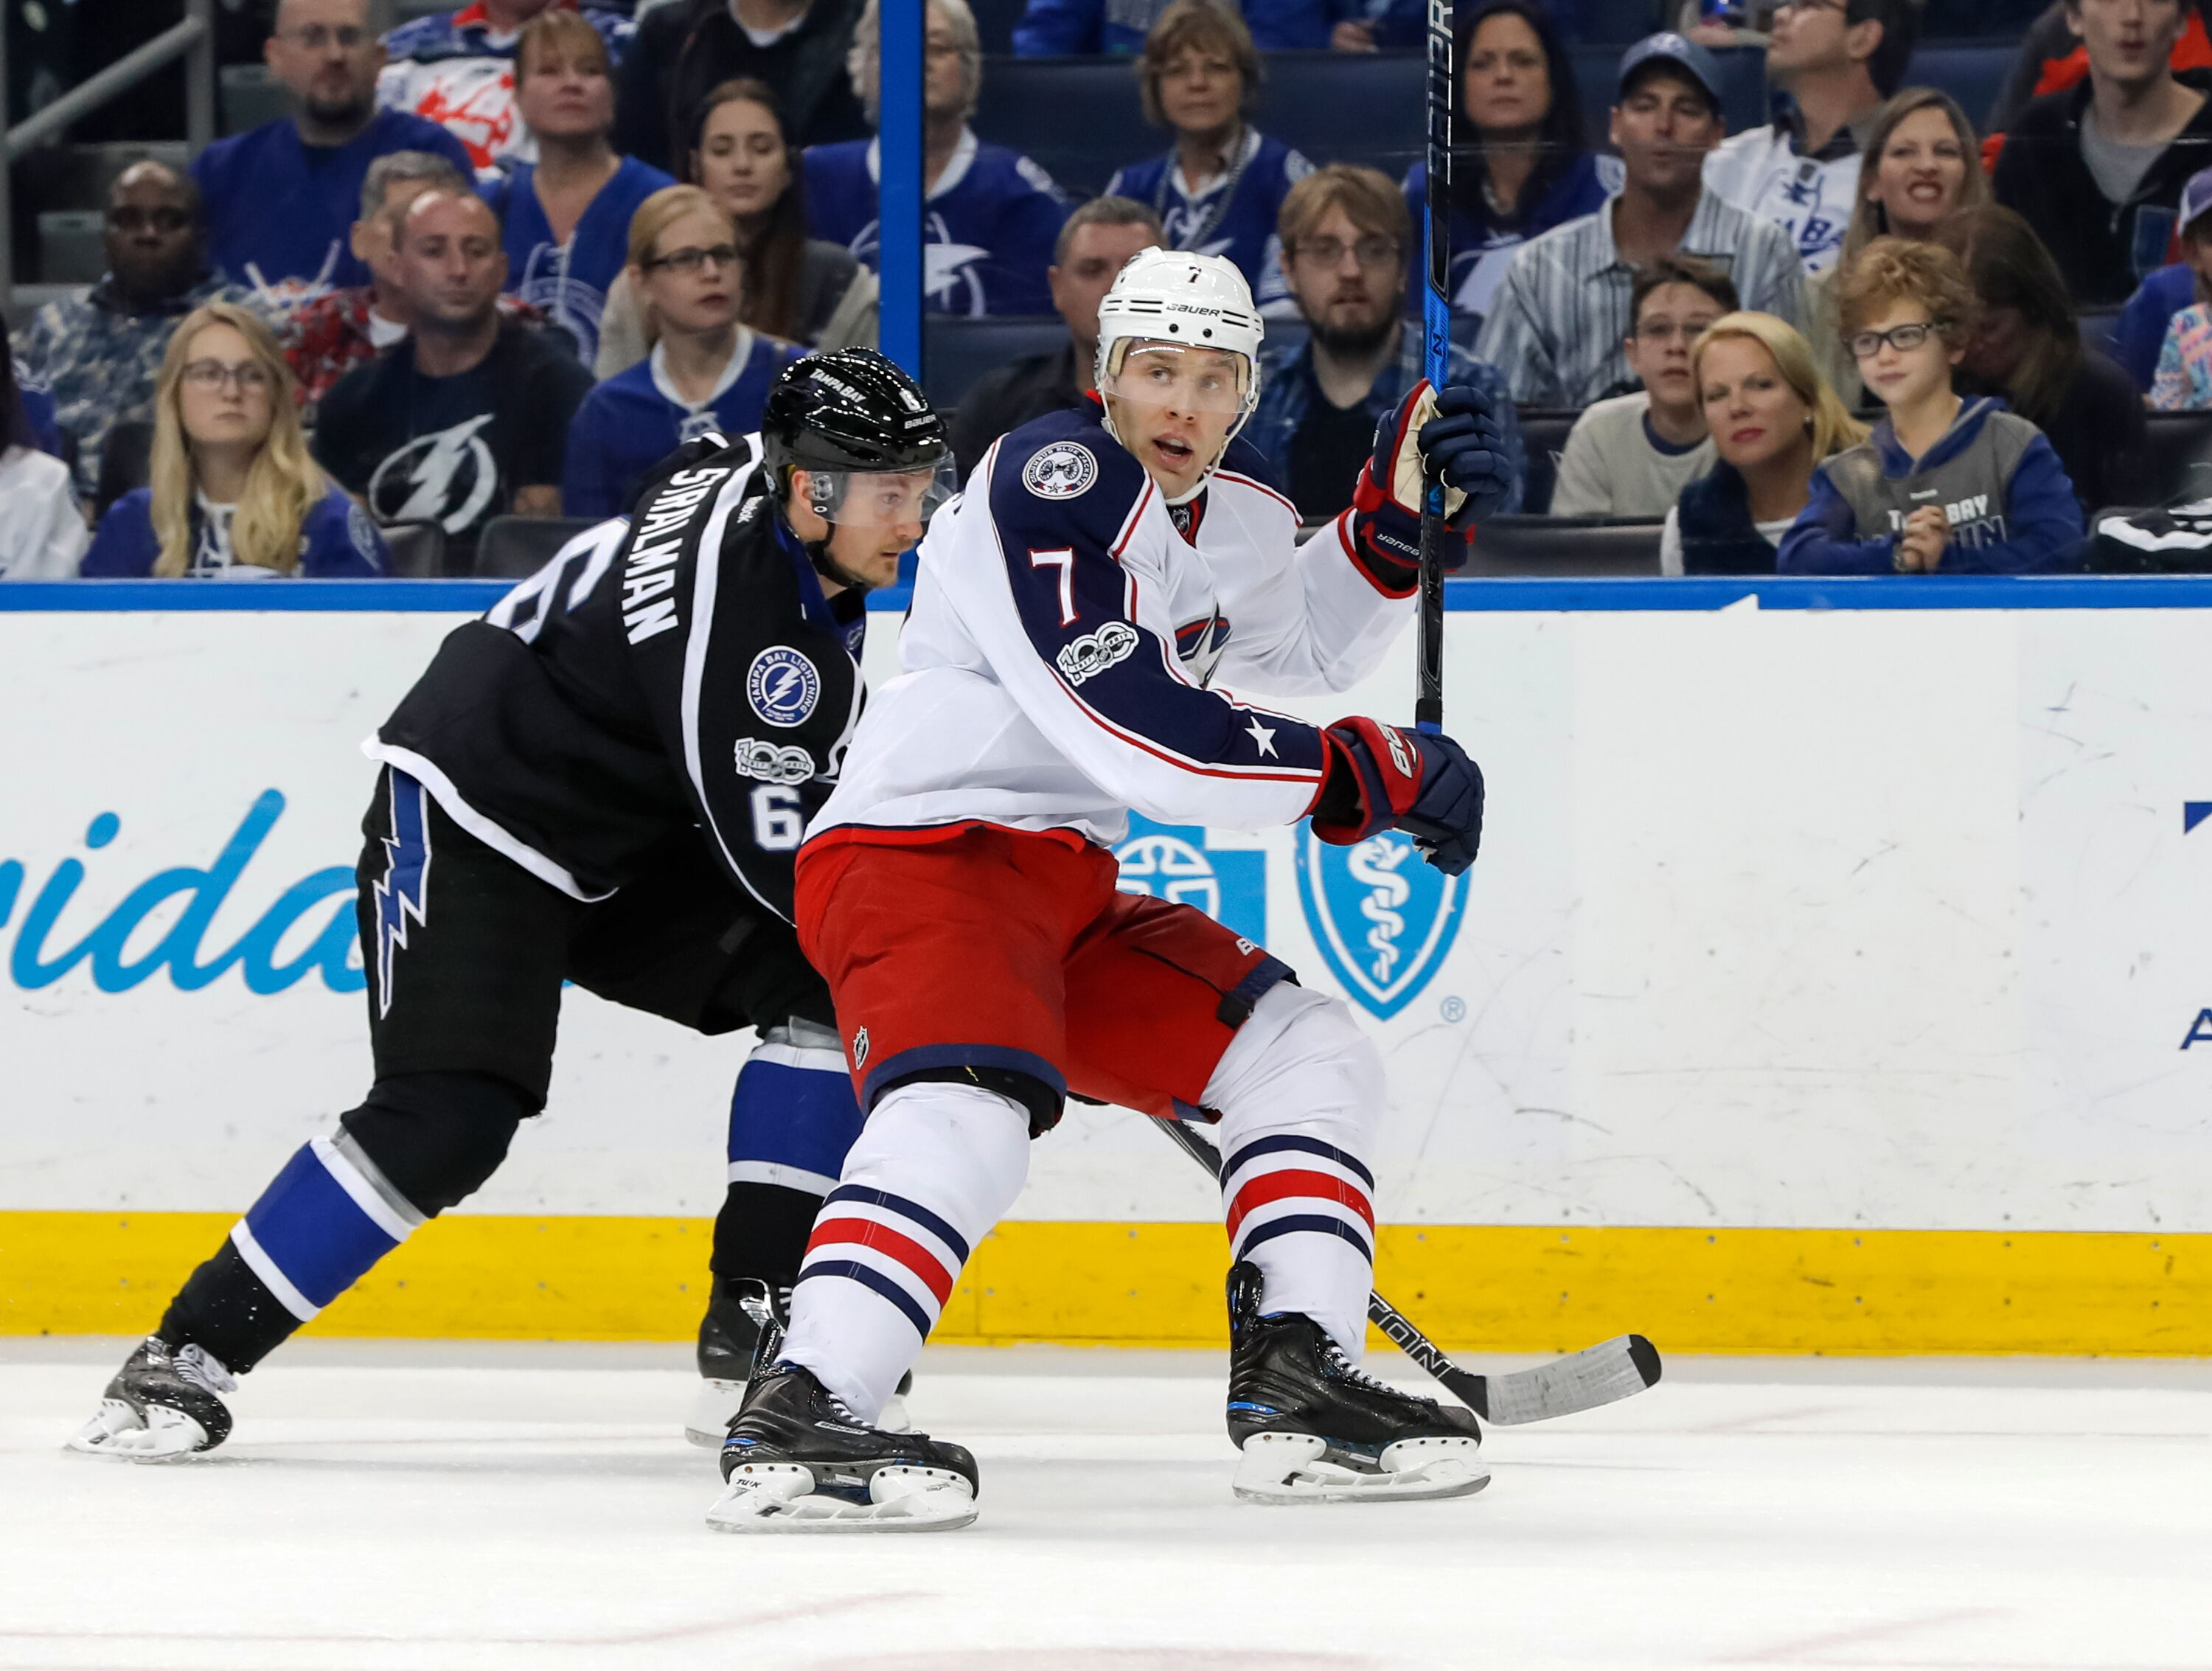 Columbus Blue Jackets vs. Lightning: Players to Watch, Keys to Win ...